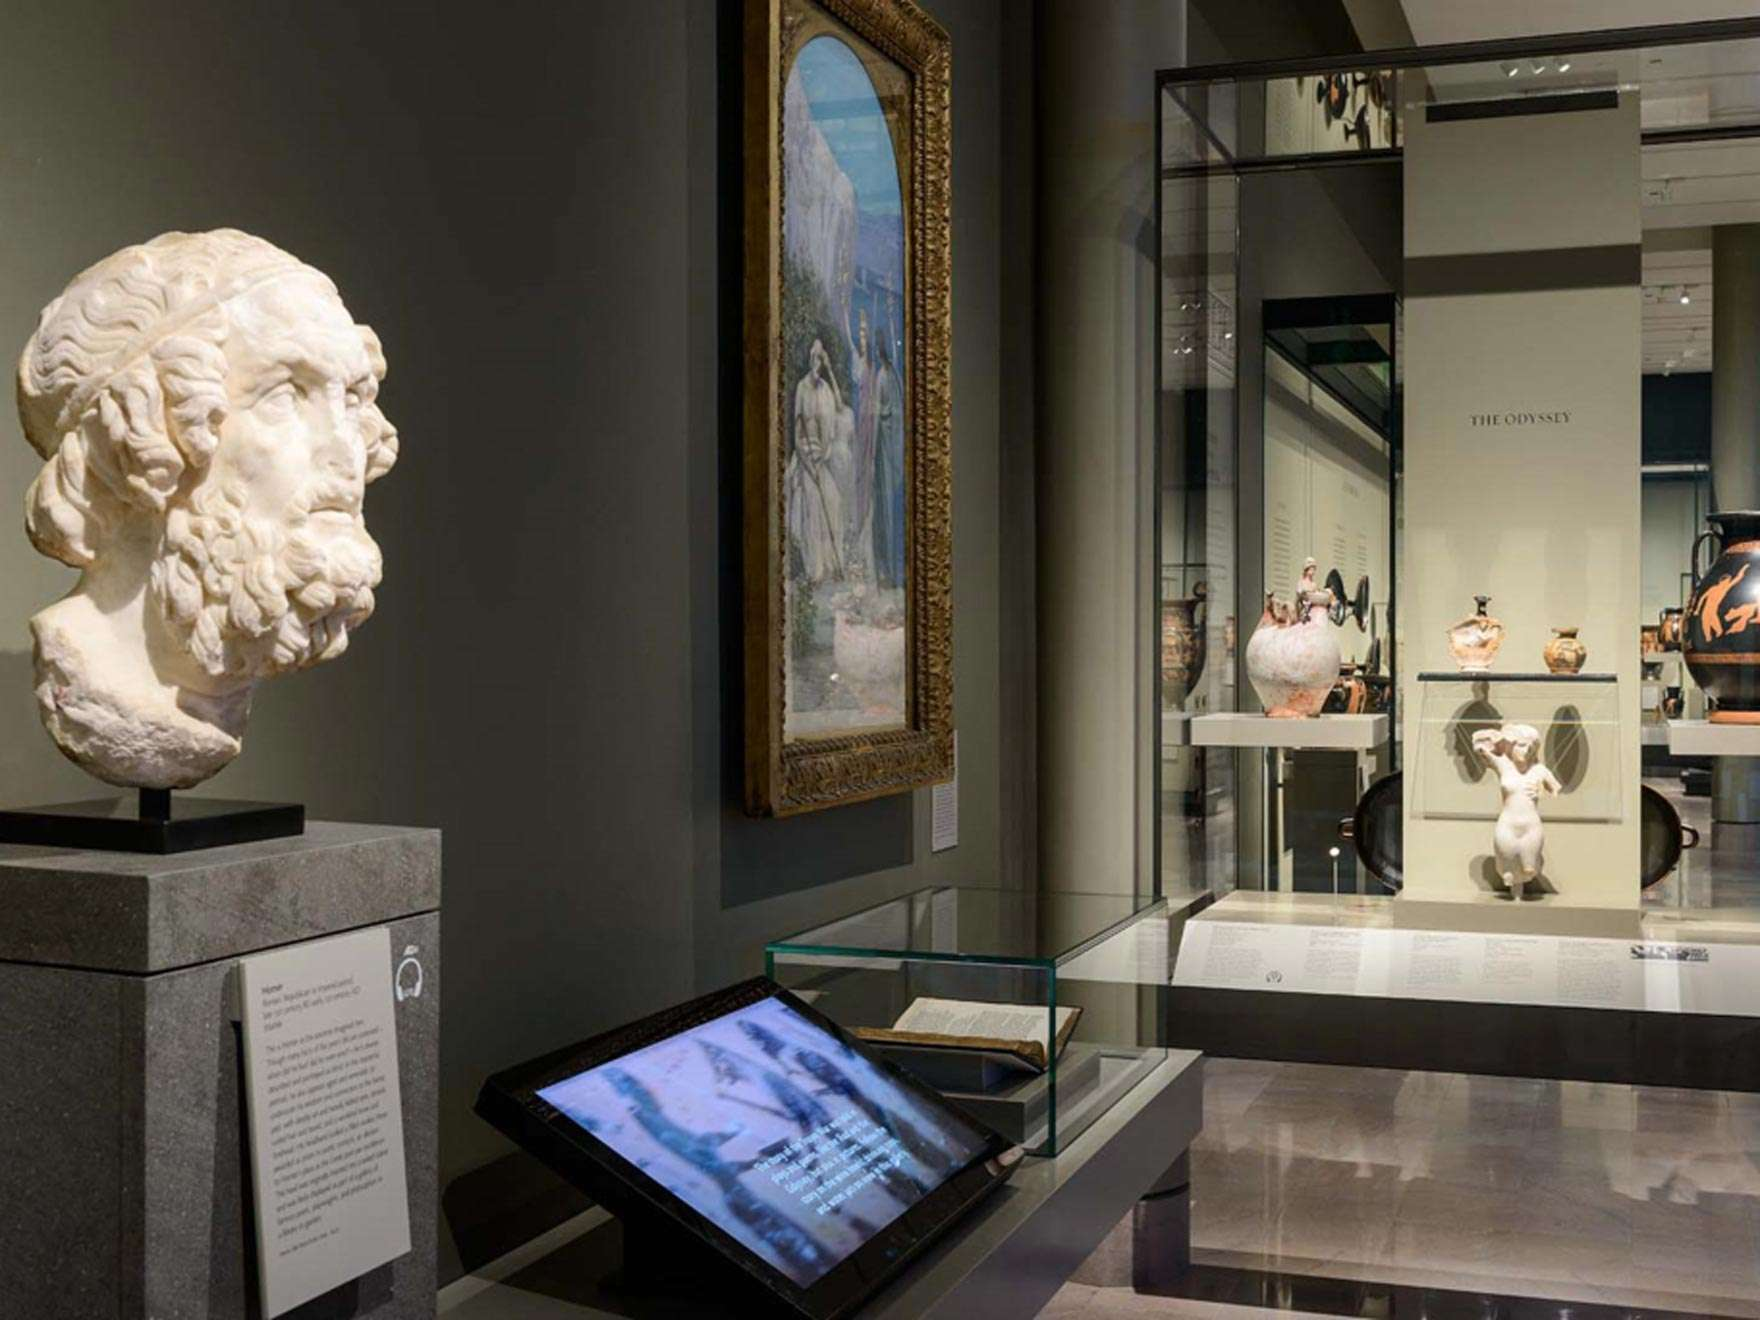 View of Greek gallery with bust in foreground next to interactive screen